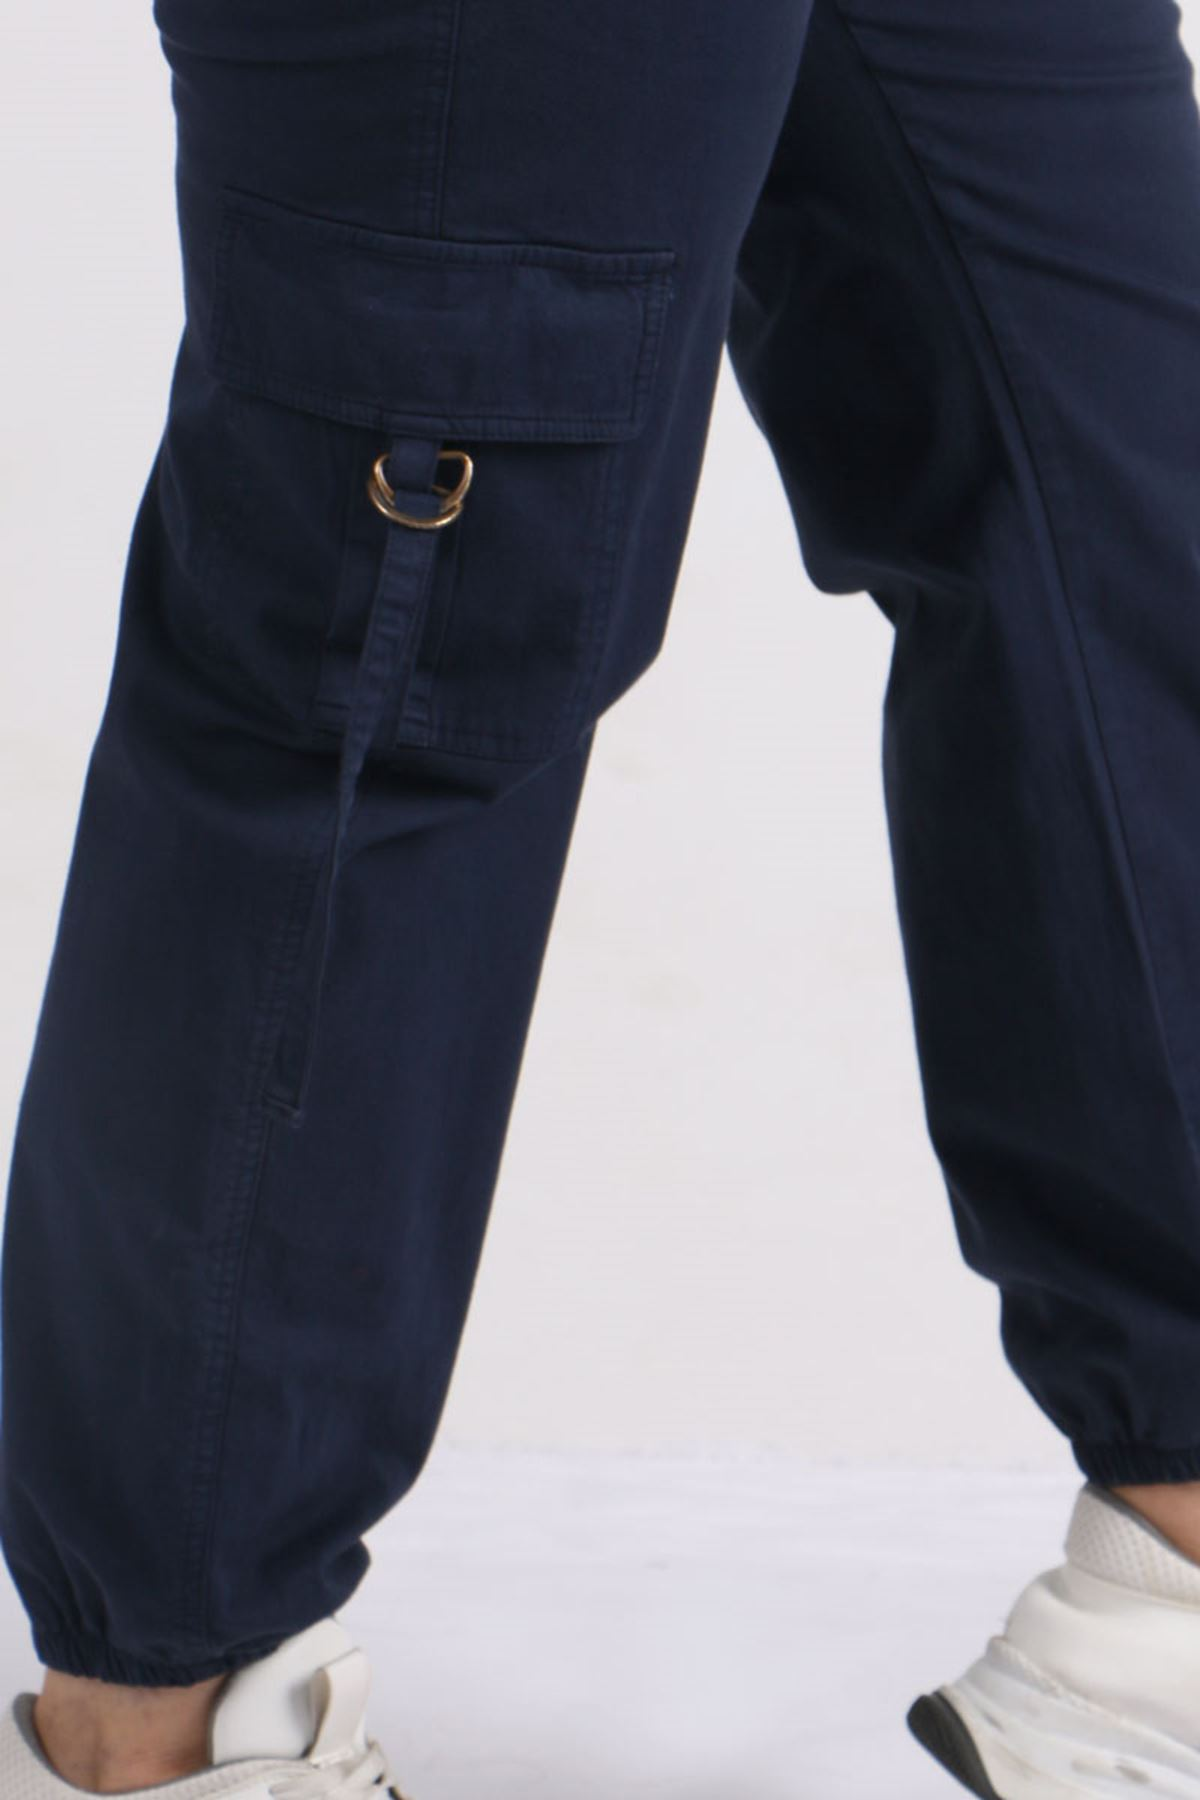 9128 Plus Size Cargo Pants with Pockets - Navy blue